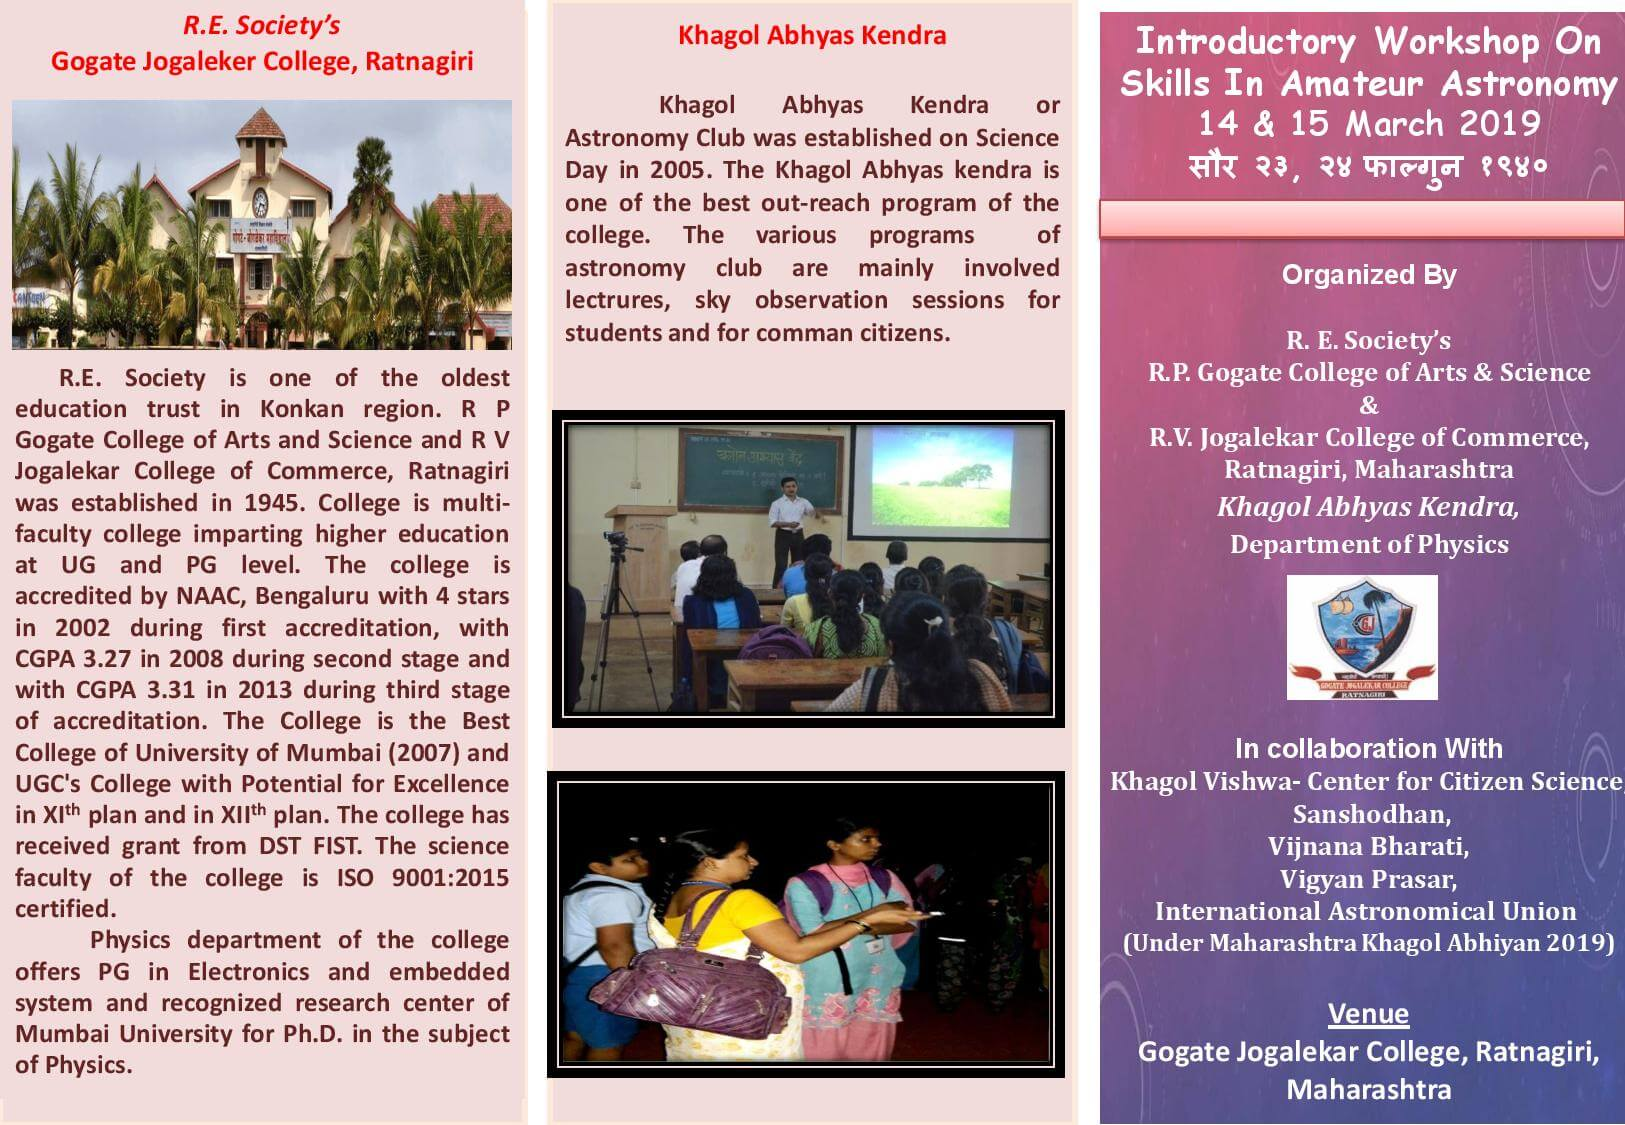 Introductory Workshop On Skills In Amateur Astronomy page-1